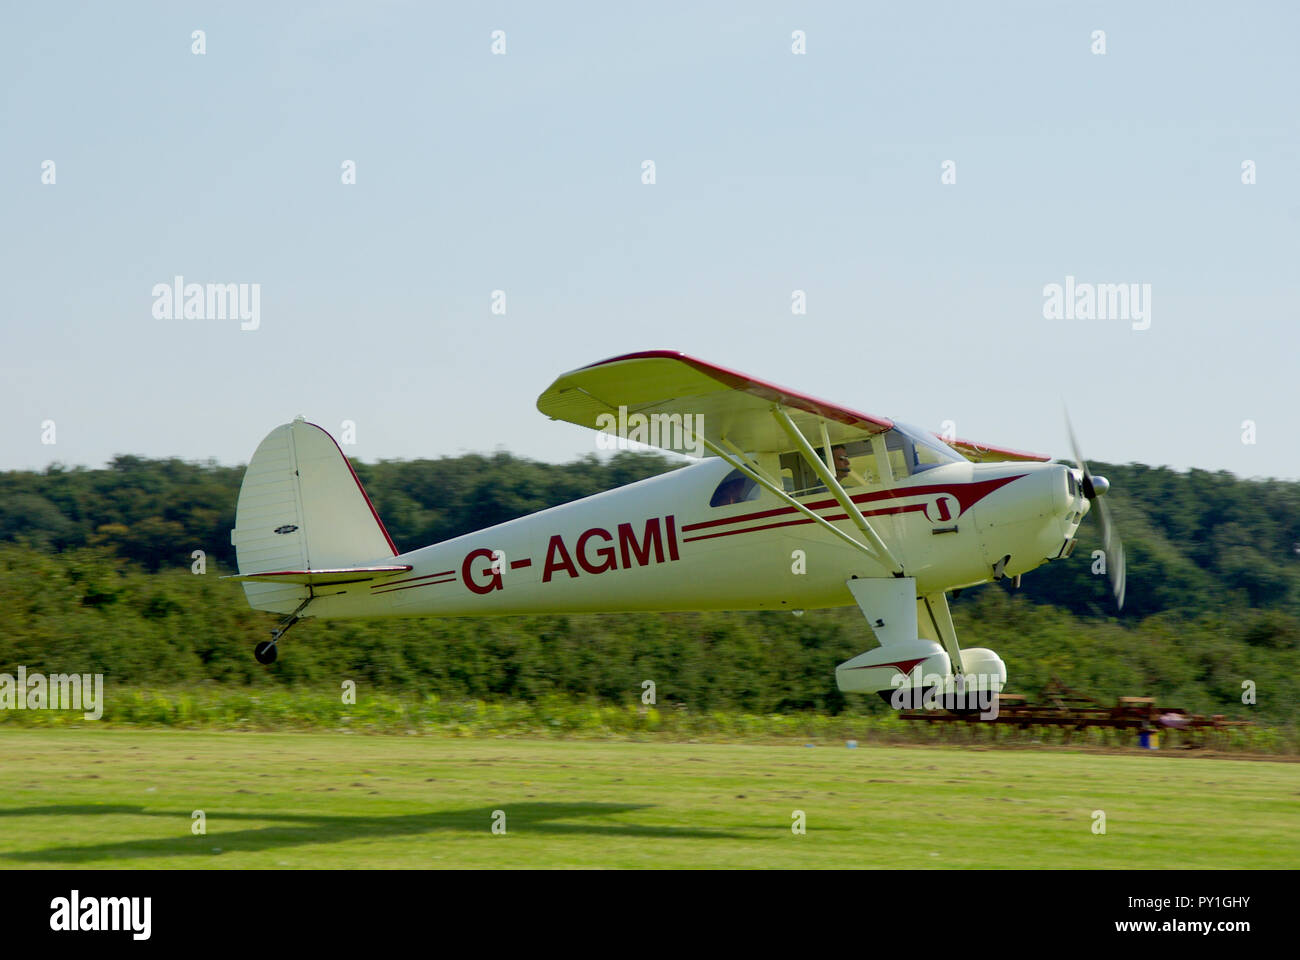 Luscombe 8E Silvaire Deluxe plane landing at Elmsett Airfield, Suffolk countryside grass airstrip. G-AGMI. High wing monoplane. Classic light aircraft - Stock Image